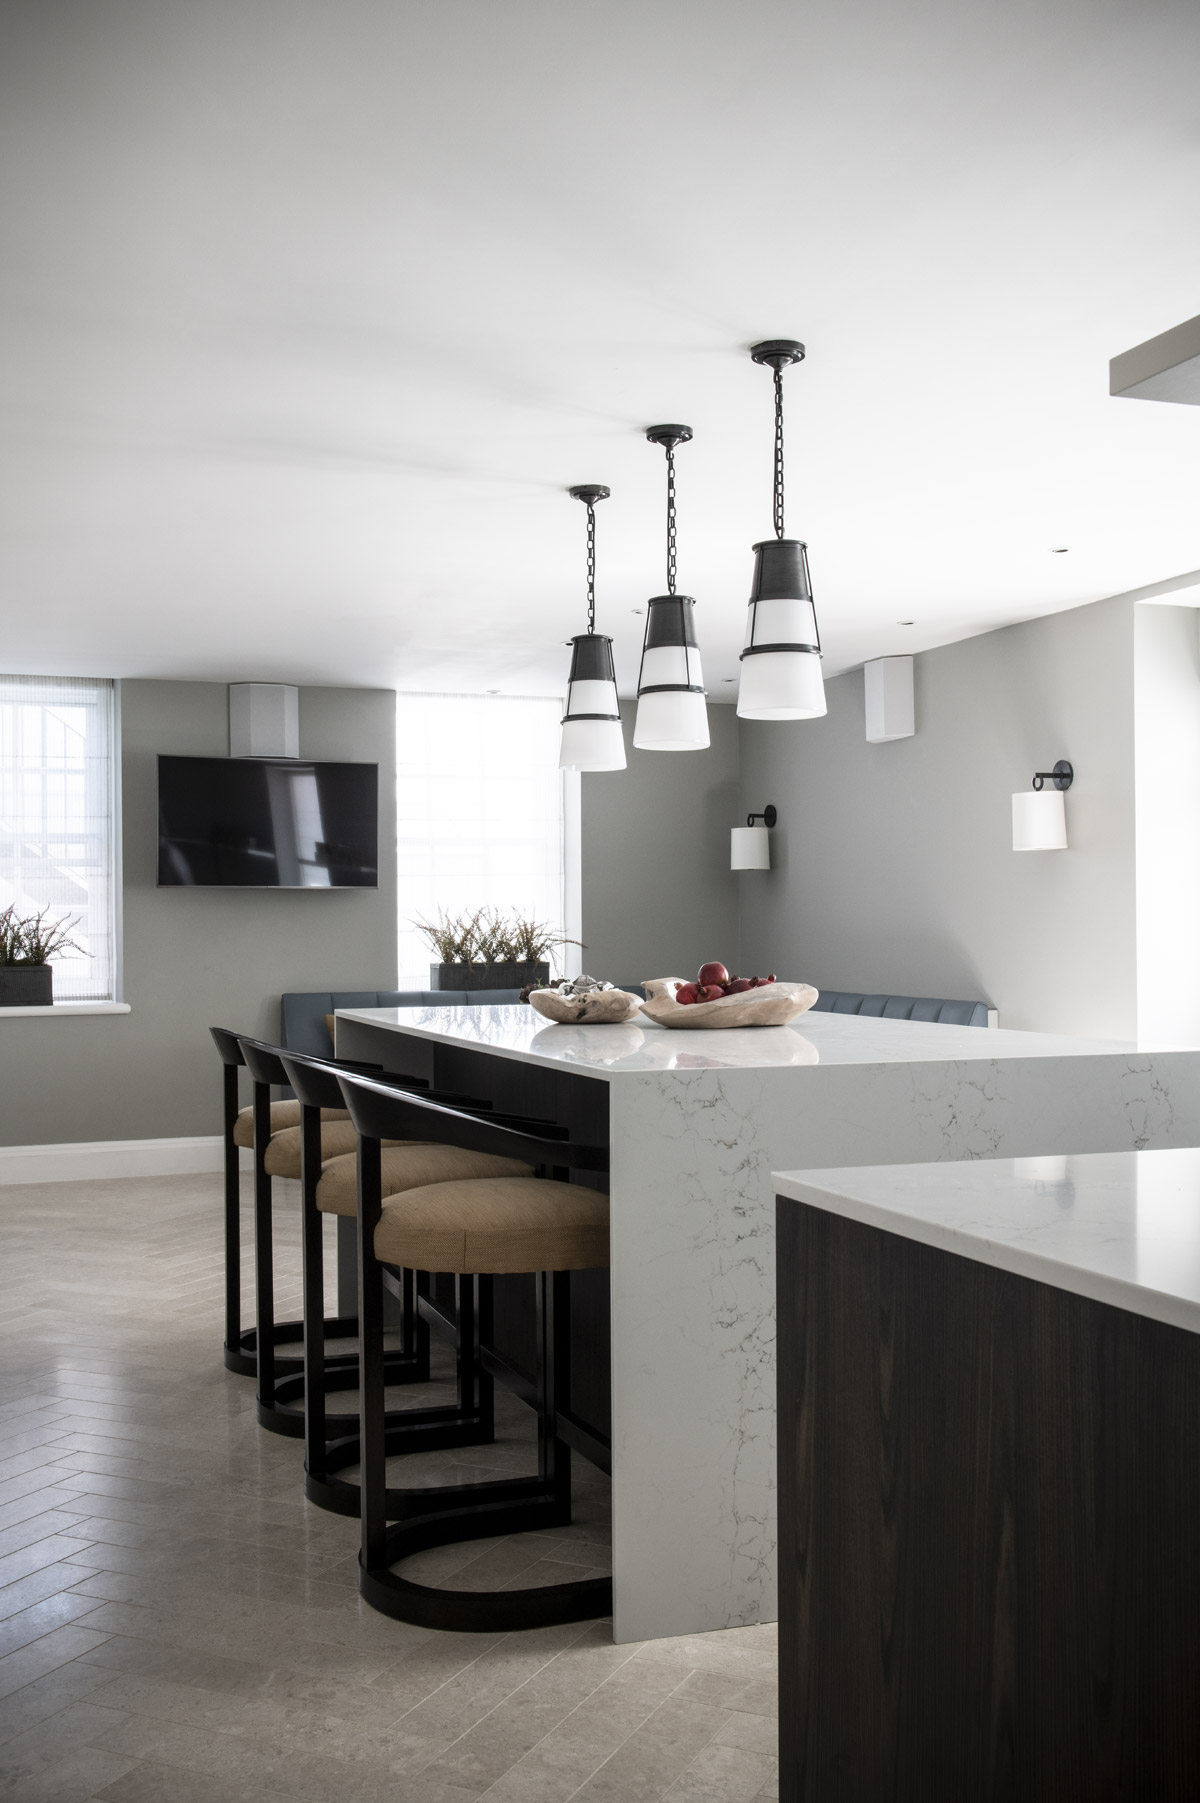 Portview Fit Out residential design project images for SBID interior design blog, Project of the Week